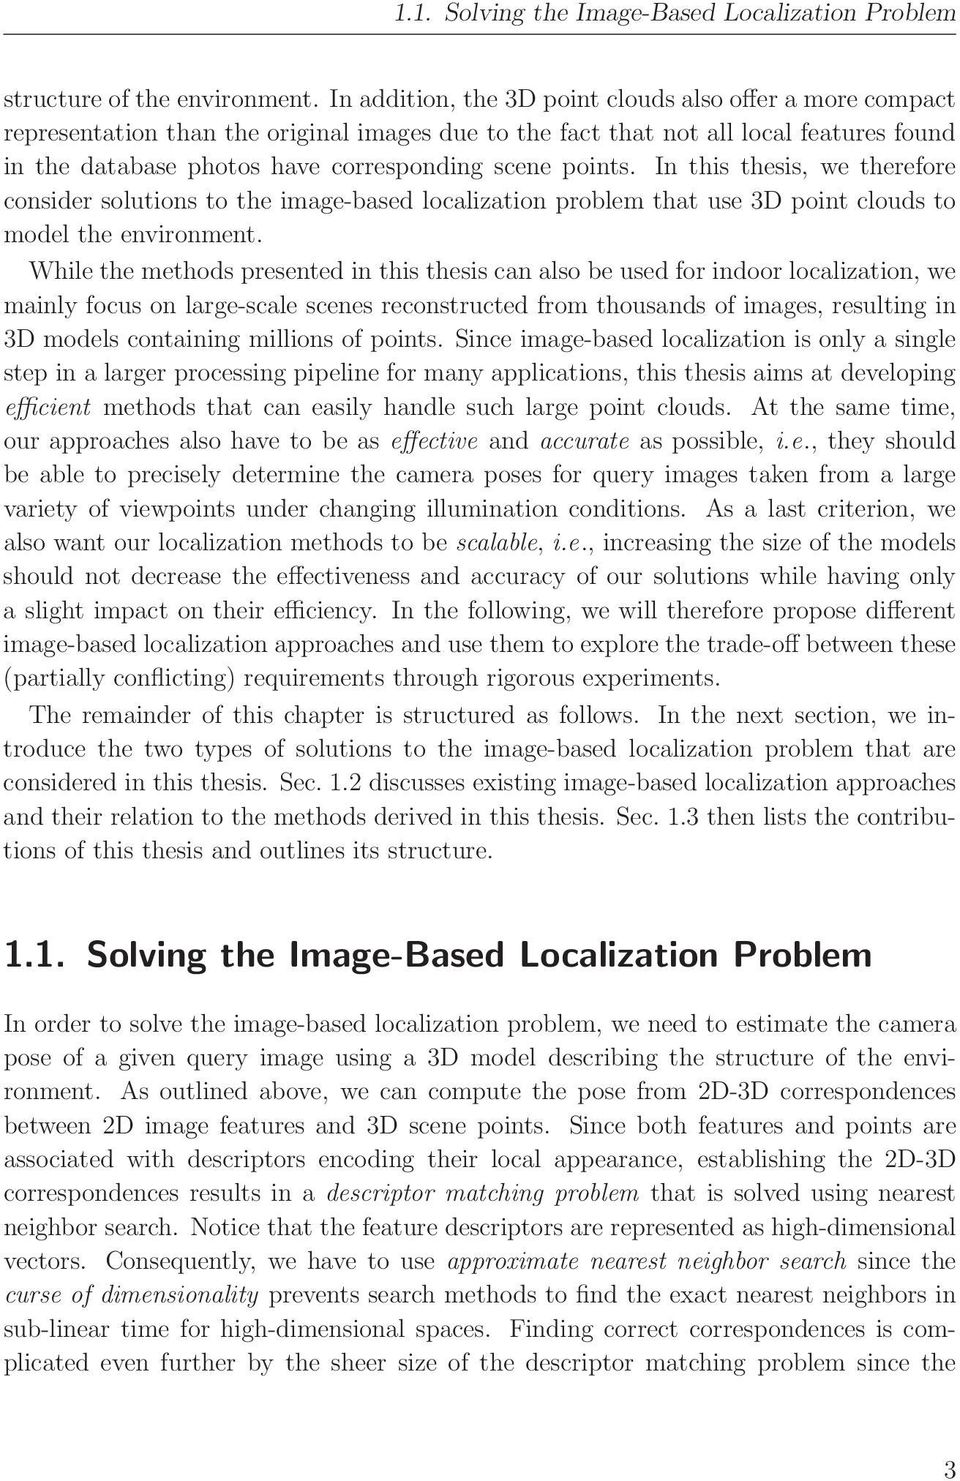 points. In this thesis, we therefore consider solutions to the image-based localization problem that use 3D point clouds to model the environment.